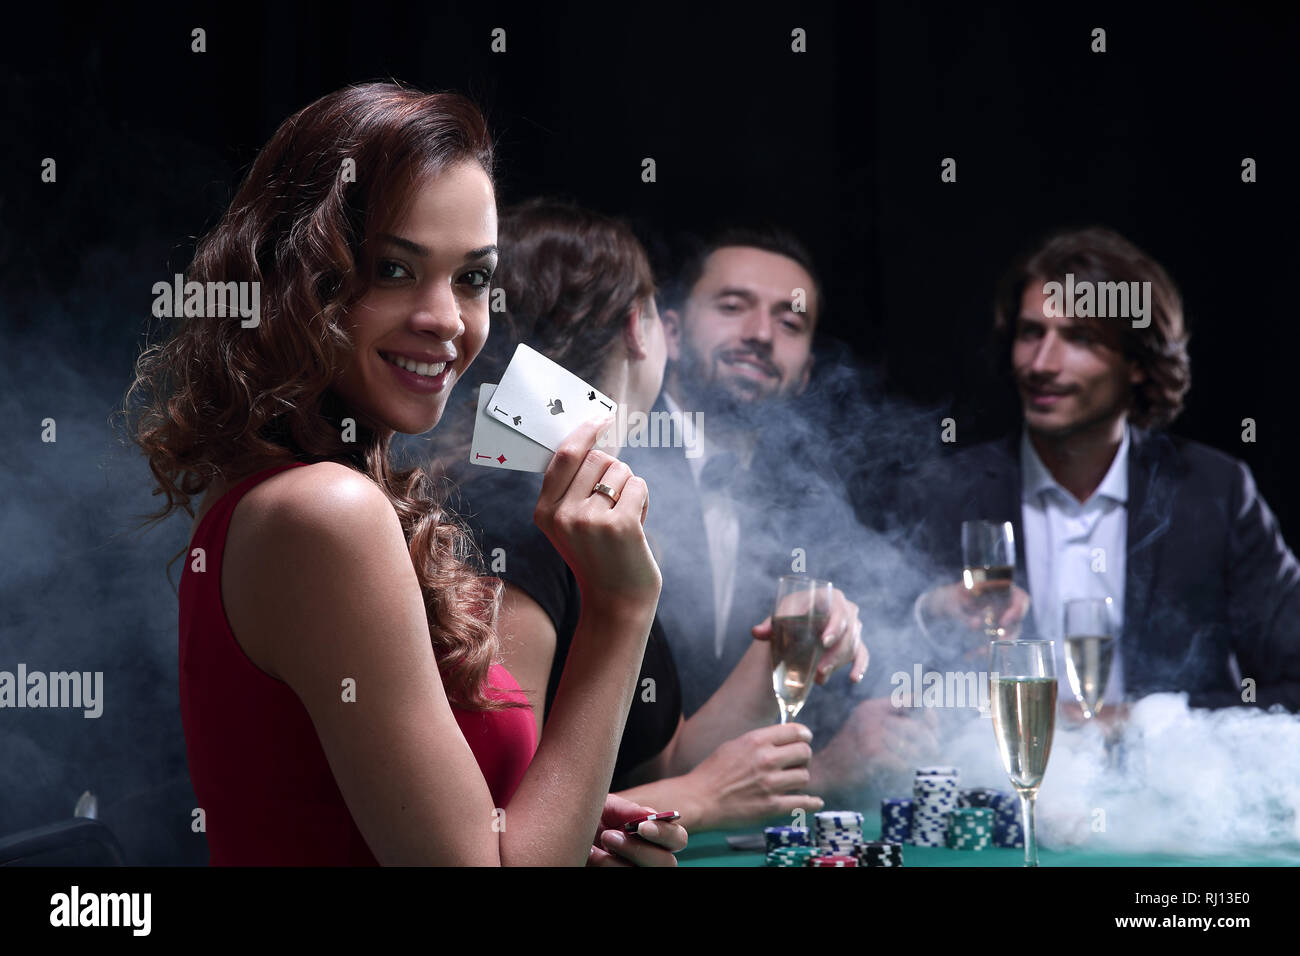 young brunette woman playing poker on black background - Stock Image